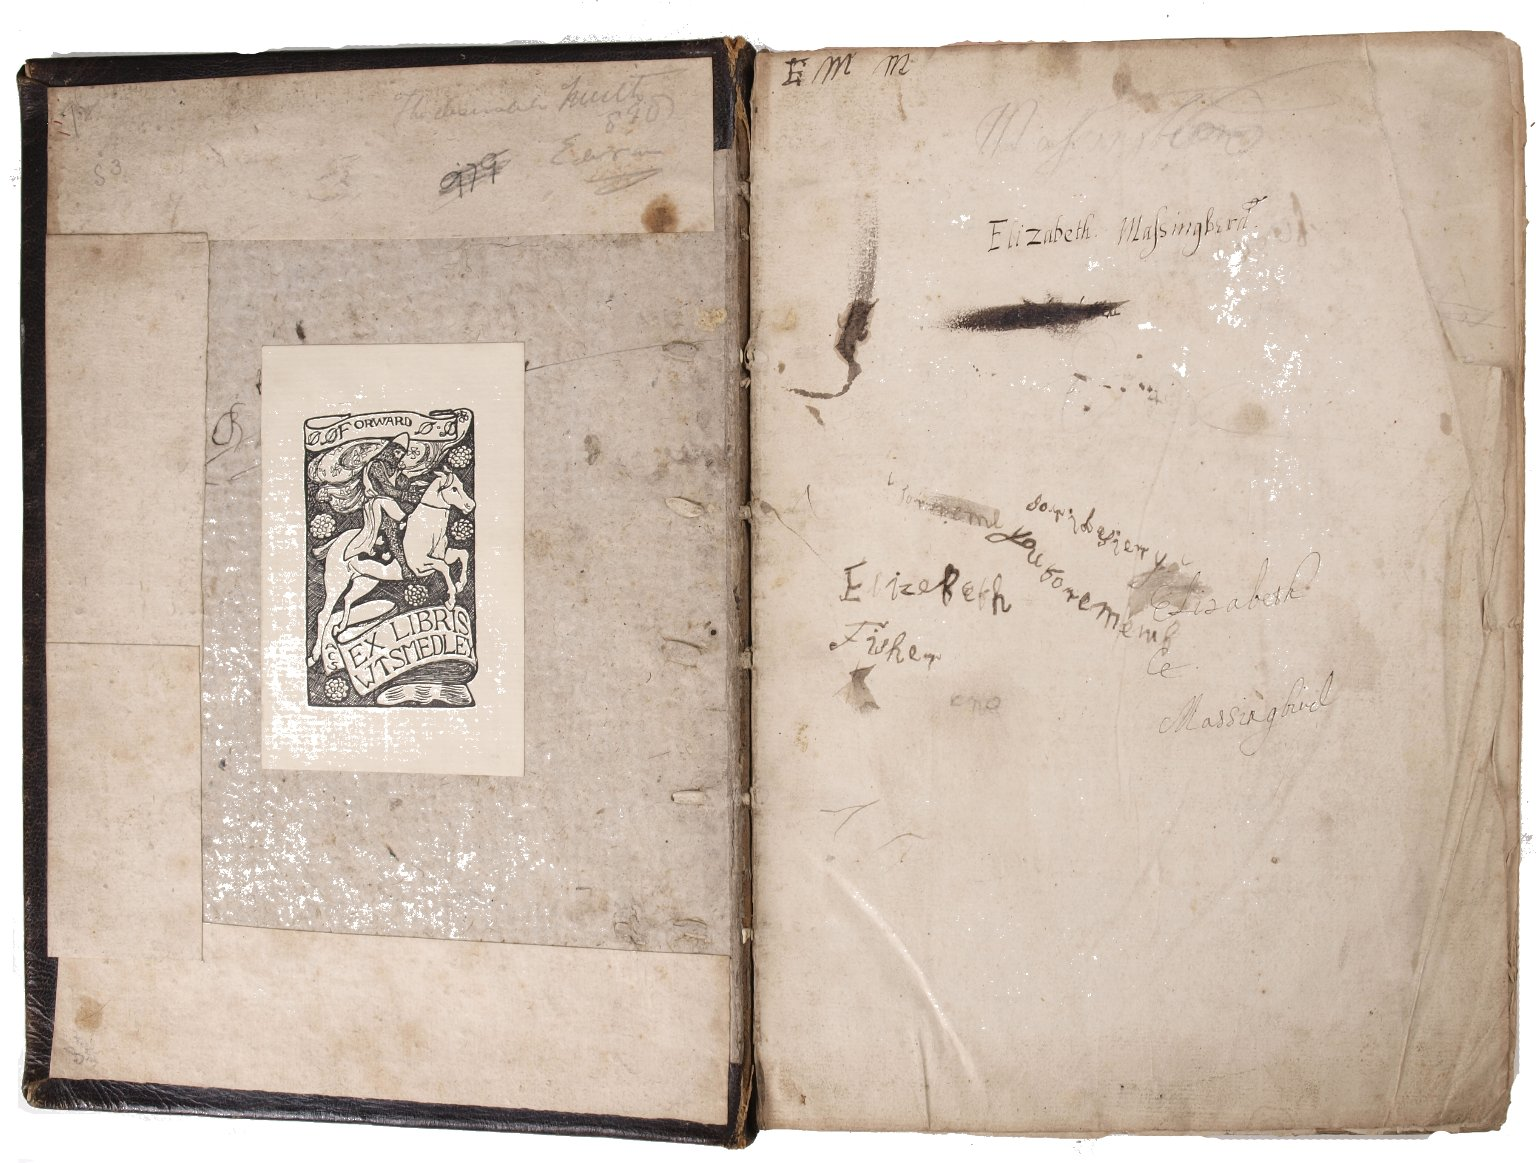 Flyleaf with autograph, STC 22550 c.3.